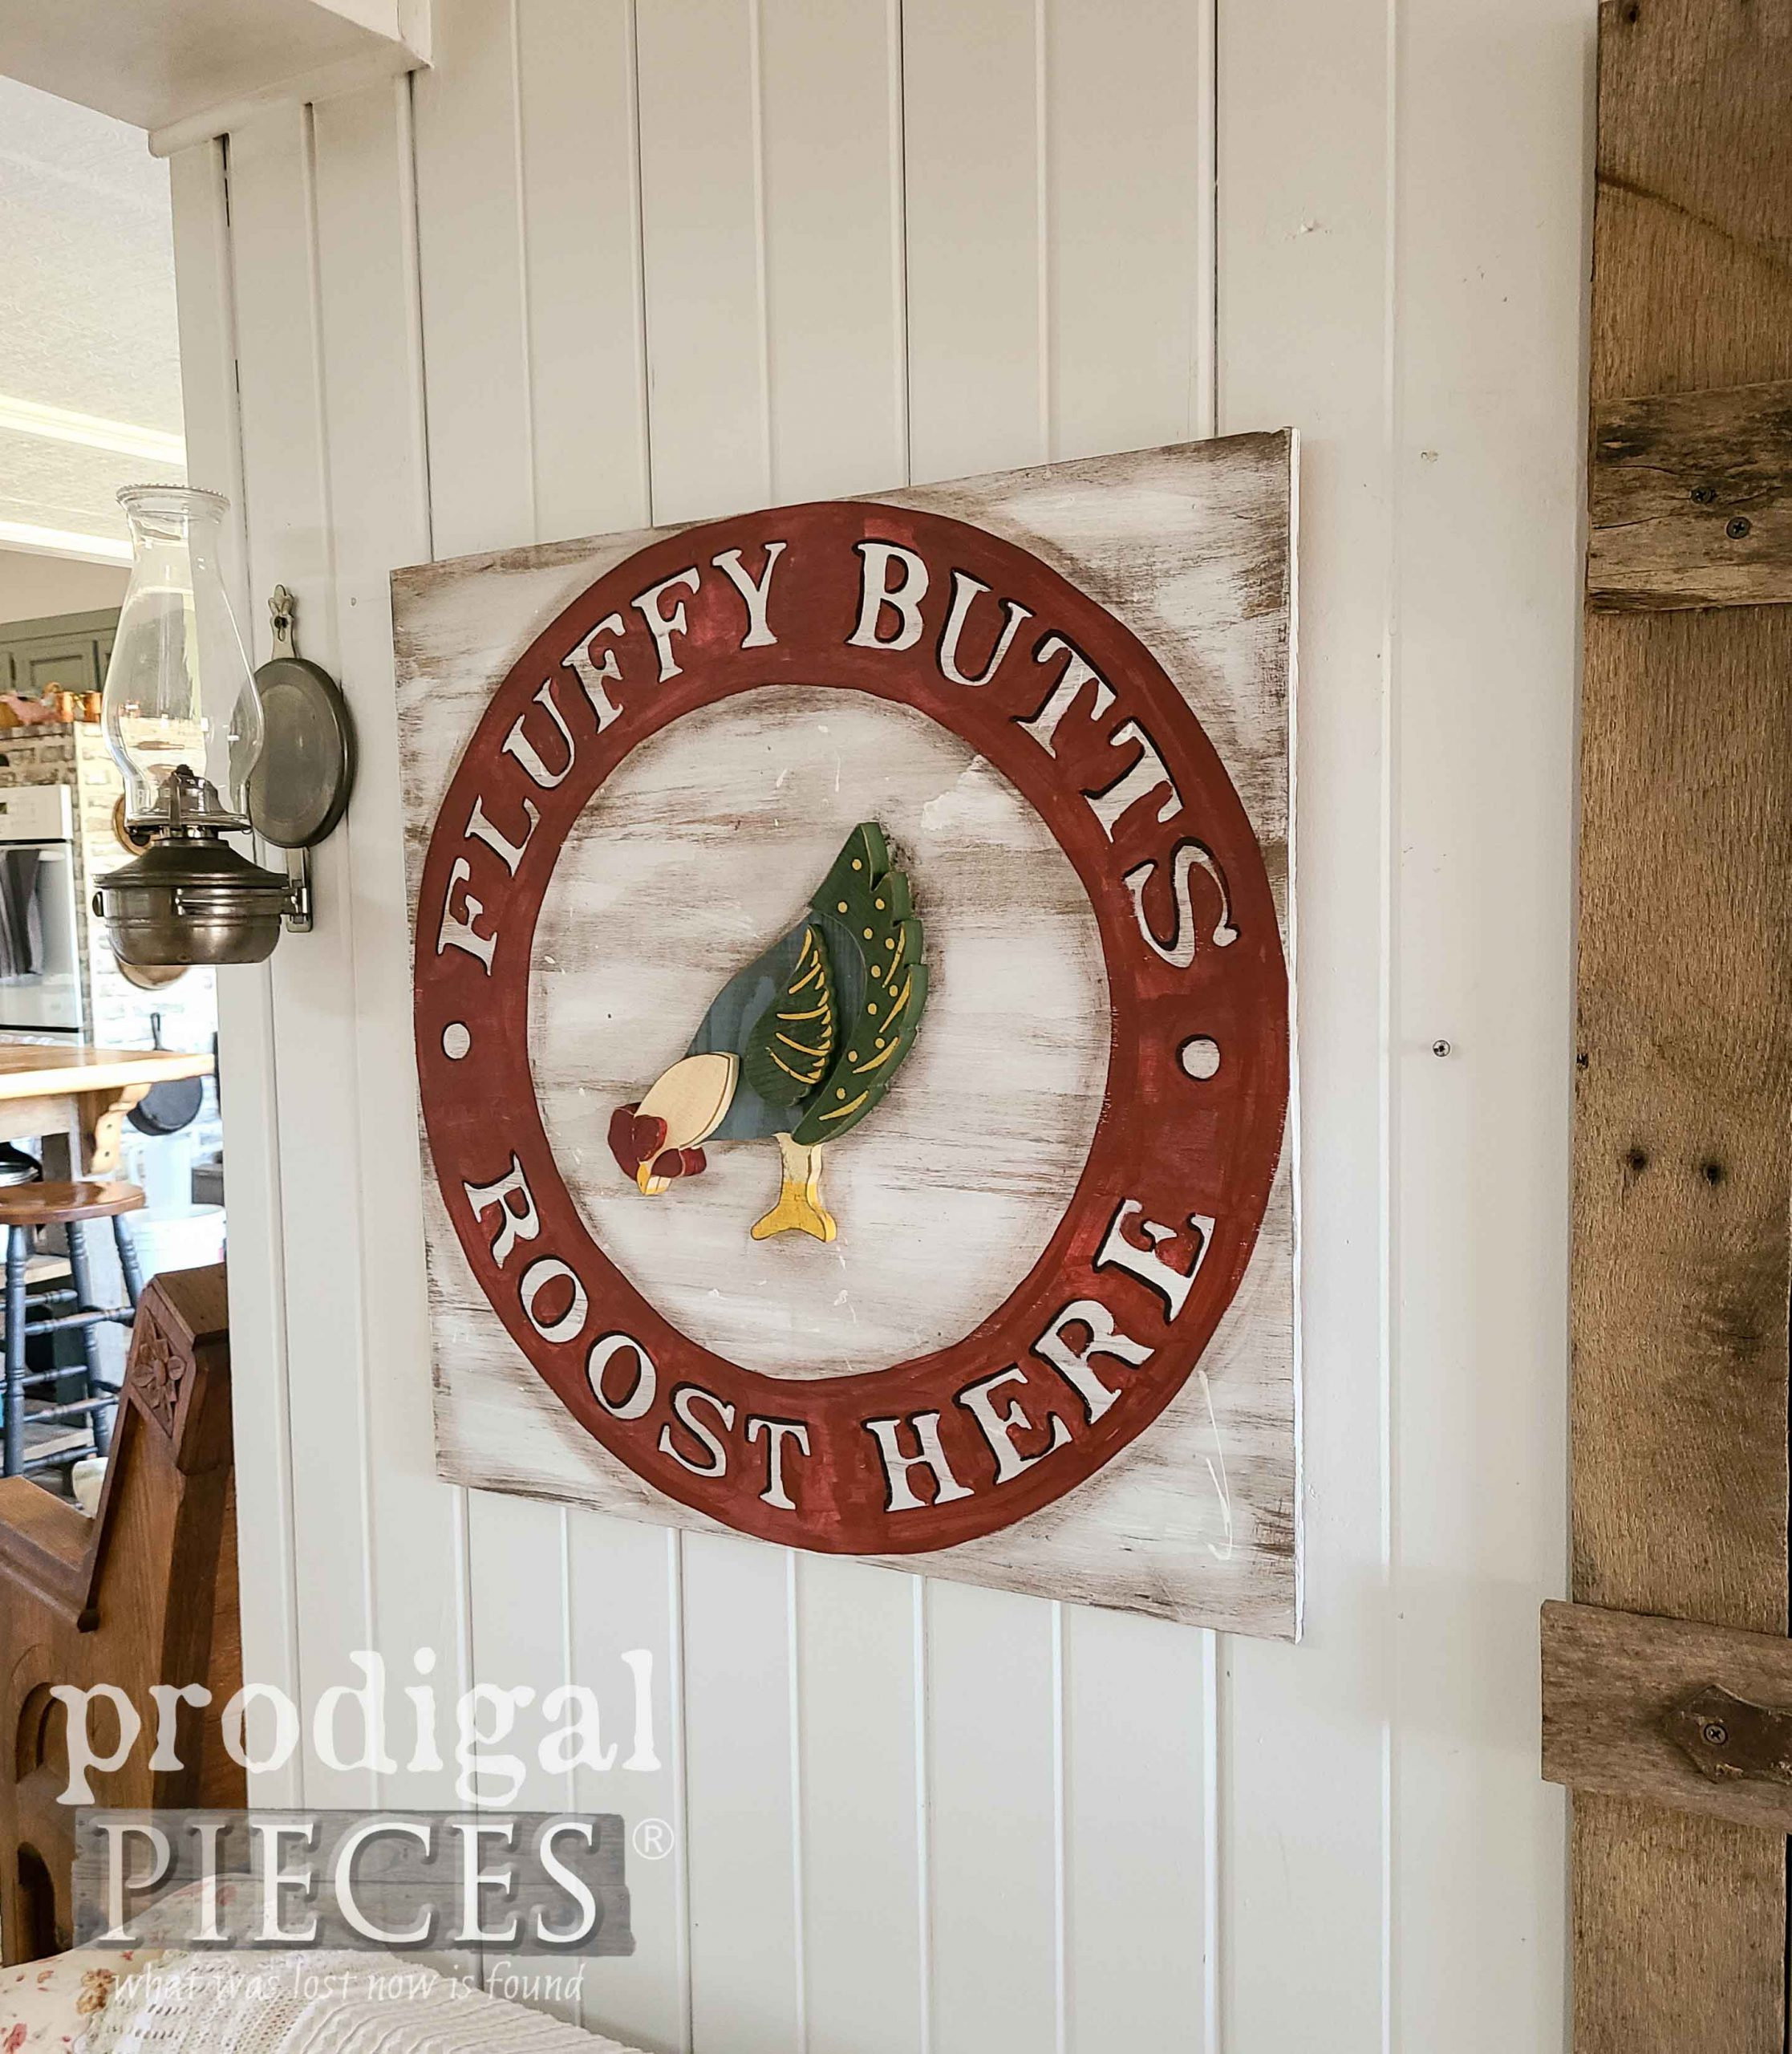 Fluffy Butts Roost Here Farmhouse Chicken Sign by Larissa of Prodigal Pieces | prodigalpieces.com #prodigalpieces #farmhouse #diy #home #homedecor